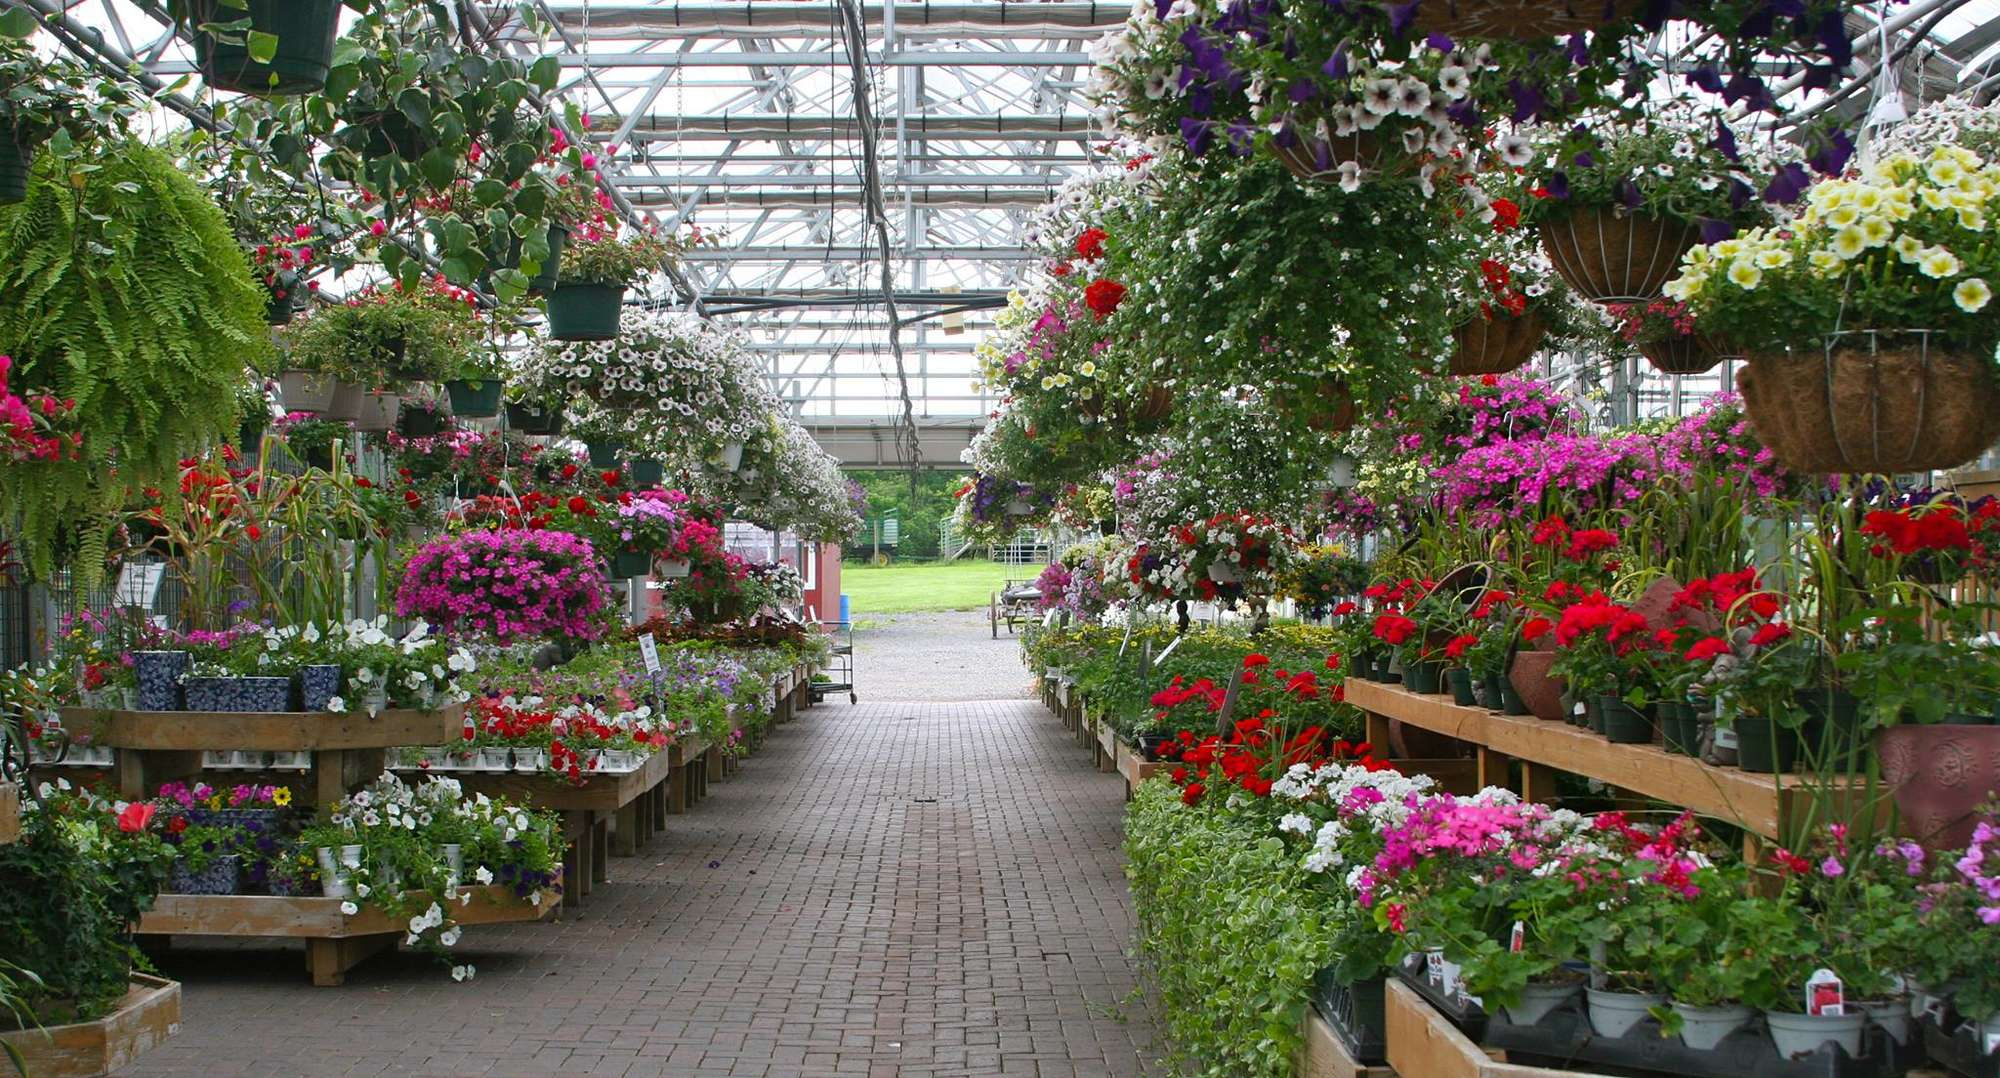 Heaven Hill Farm And Garden Center 451 State Route 94 Vernon New Jersey 07462 Get